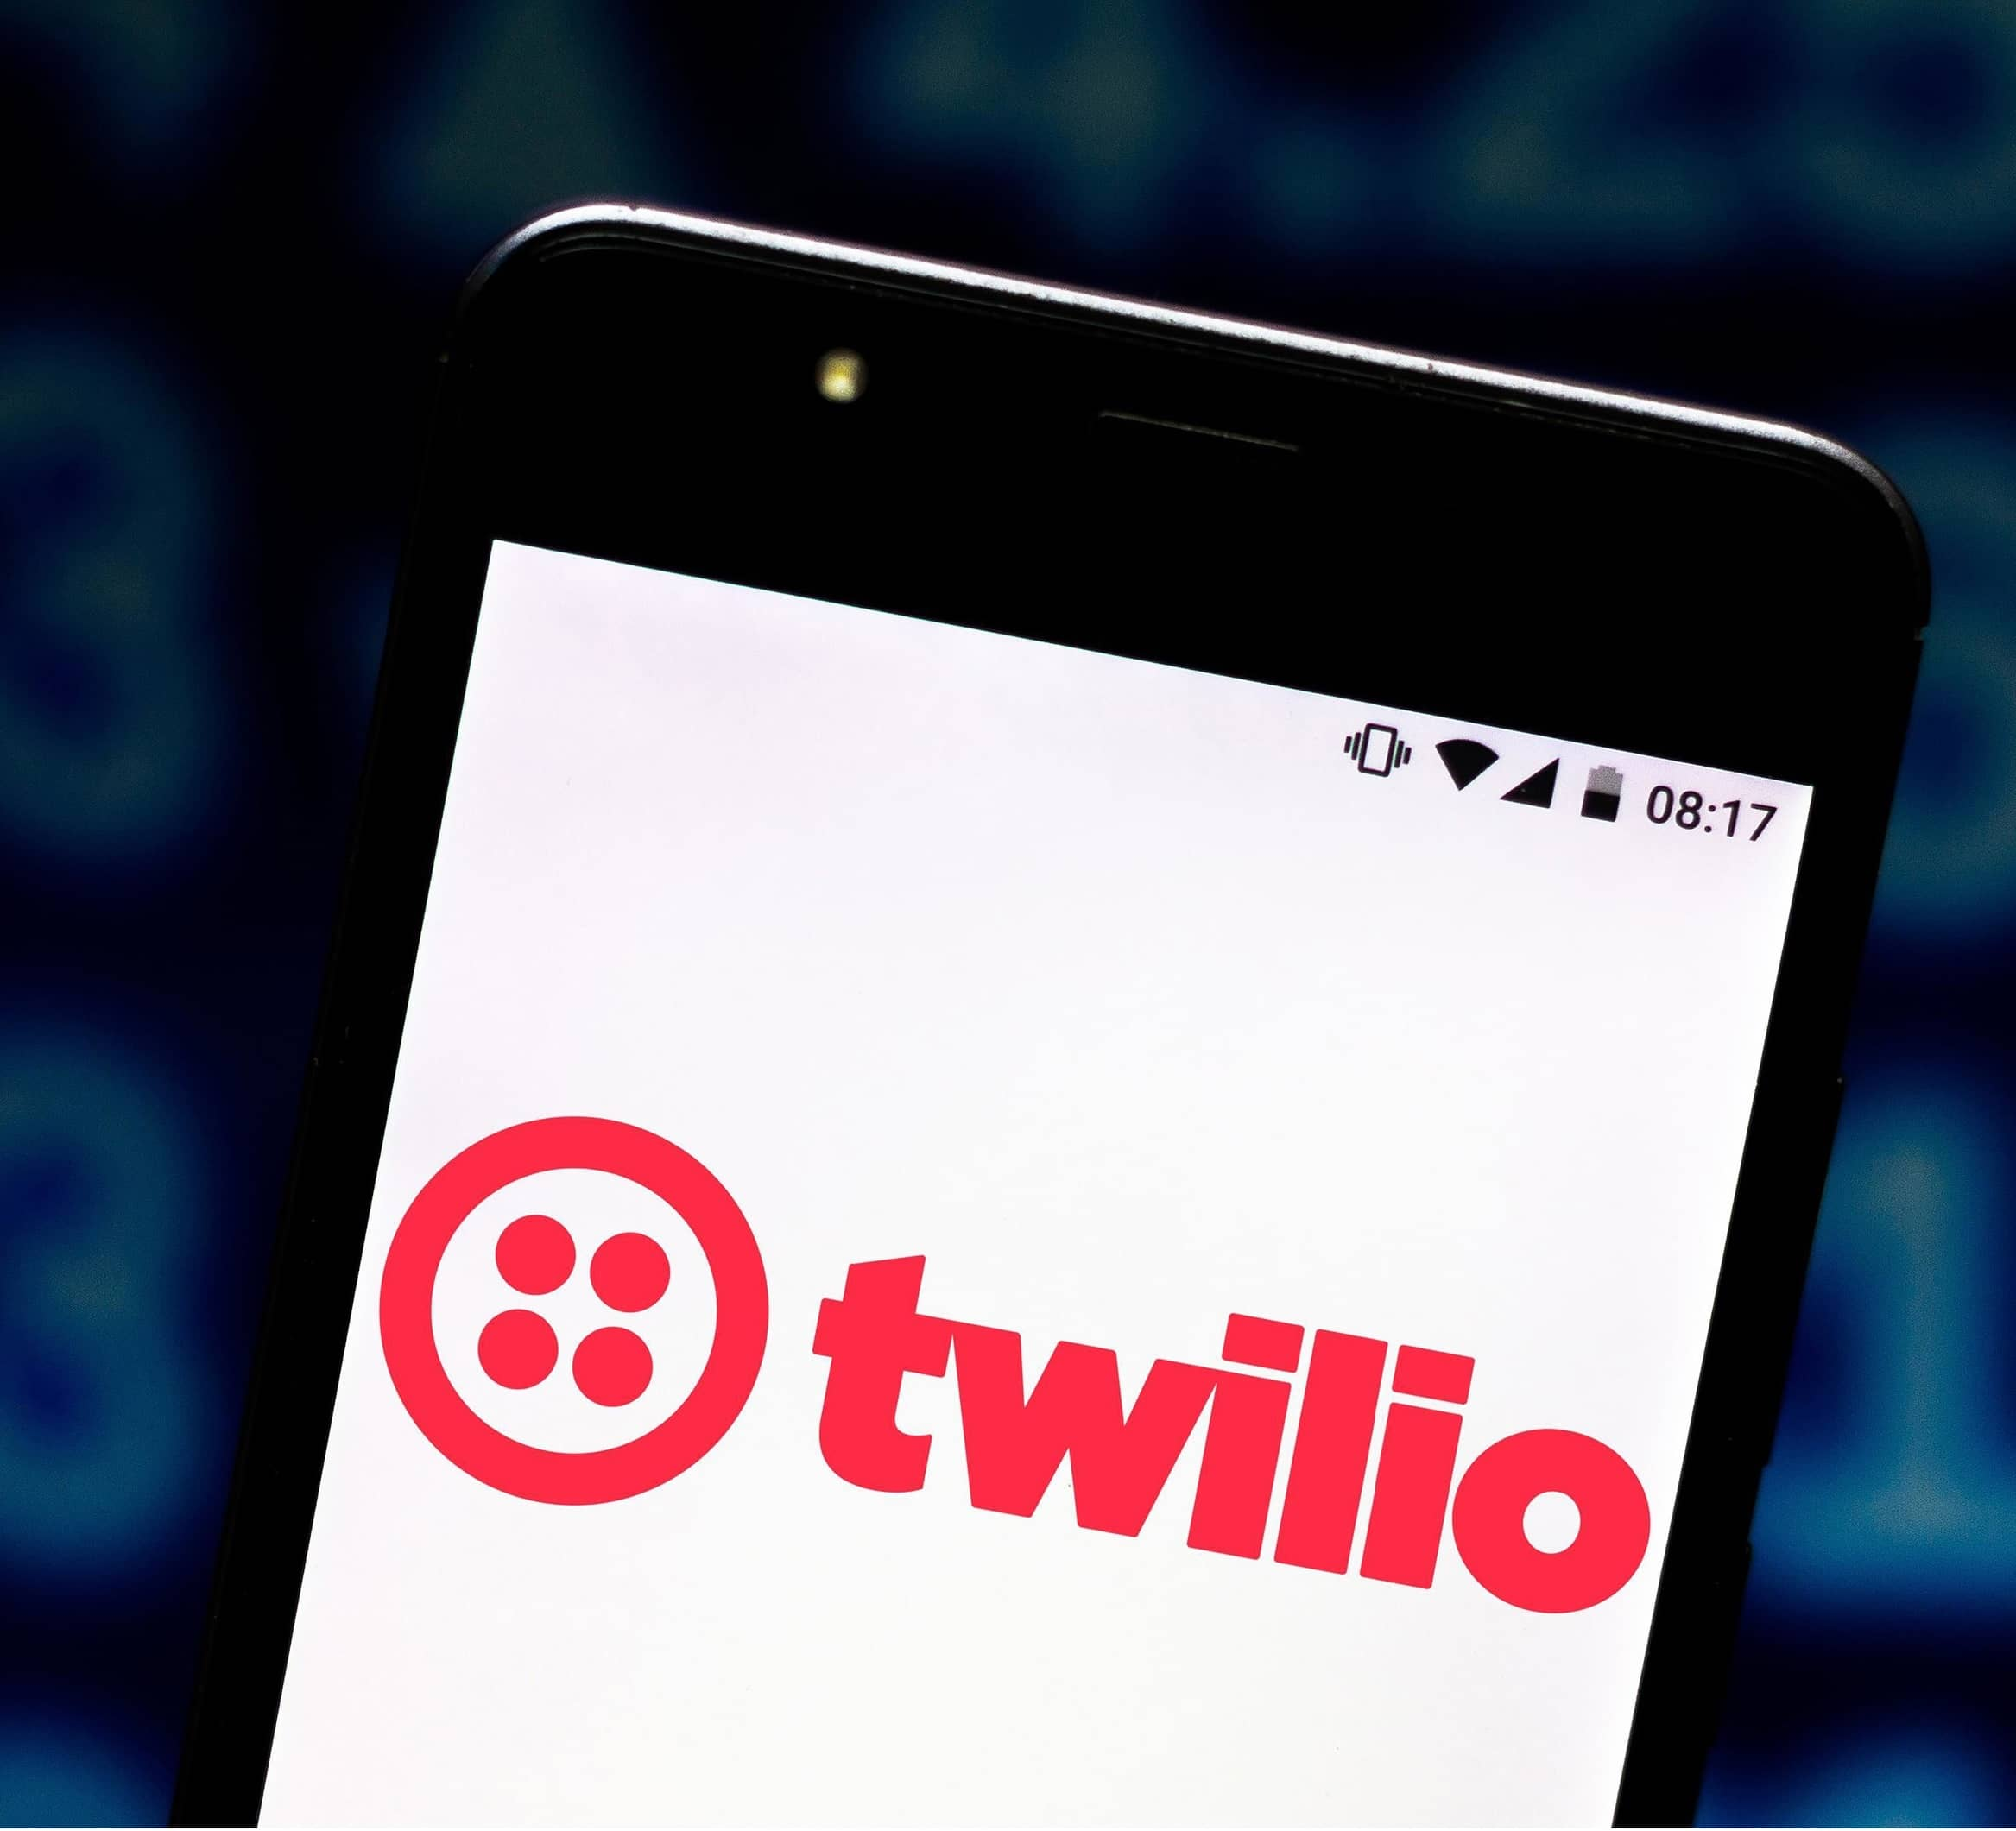 TWILIO BUYS SEGMENT FOR $3.2B AS DEMAND FOR CLOUD TECH BOOMS